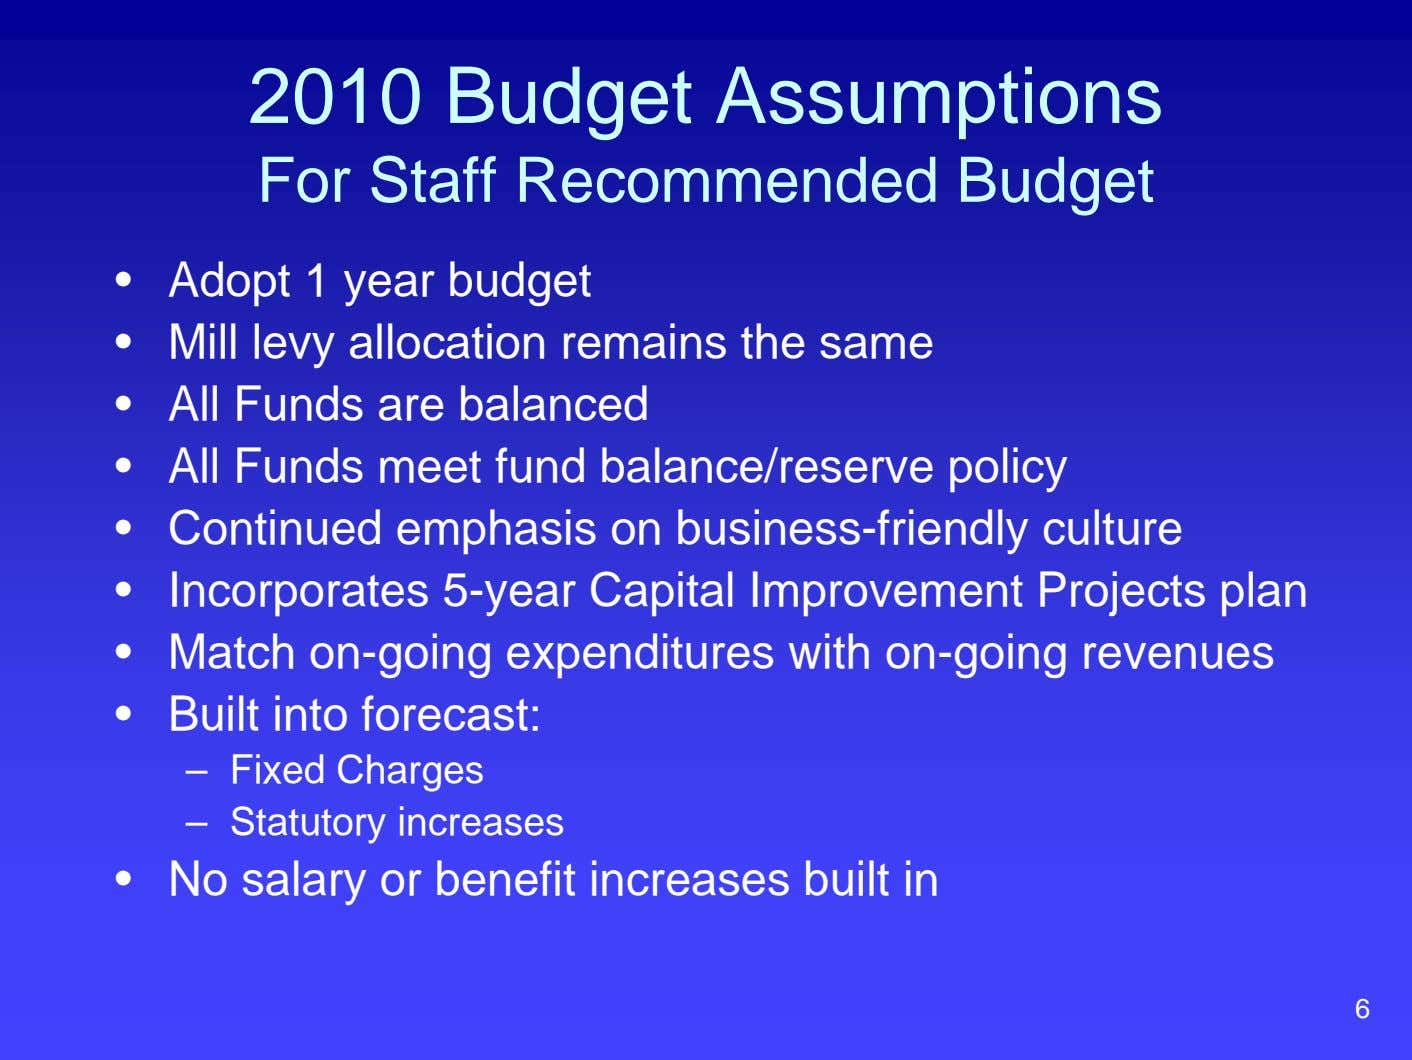 2010 Budget Assumptions For Staff Recommended Budget • Adopt 1 year budget • Mill levy